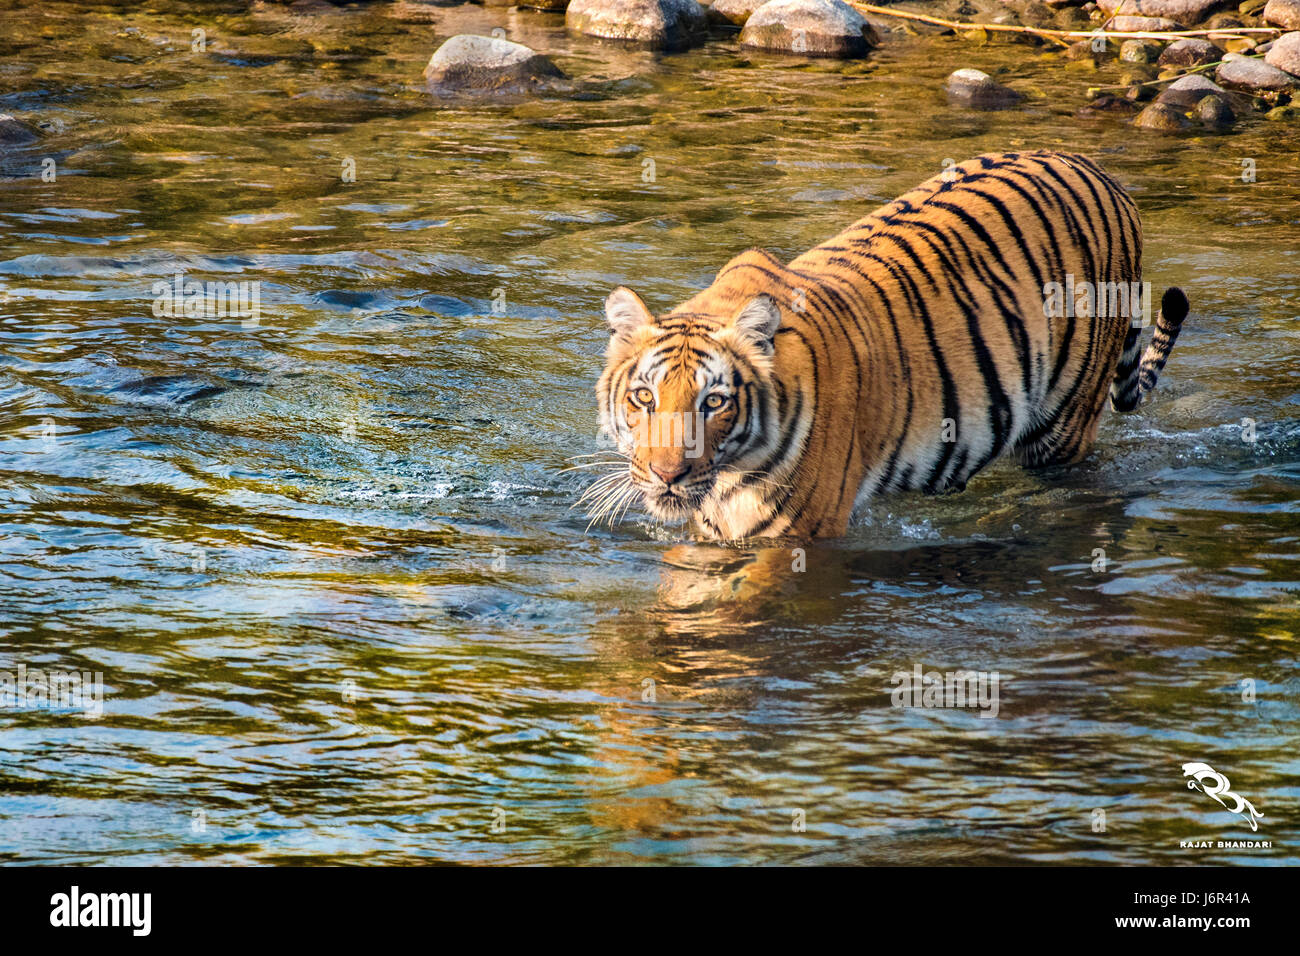 Tiger river crossing - Stock Image